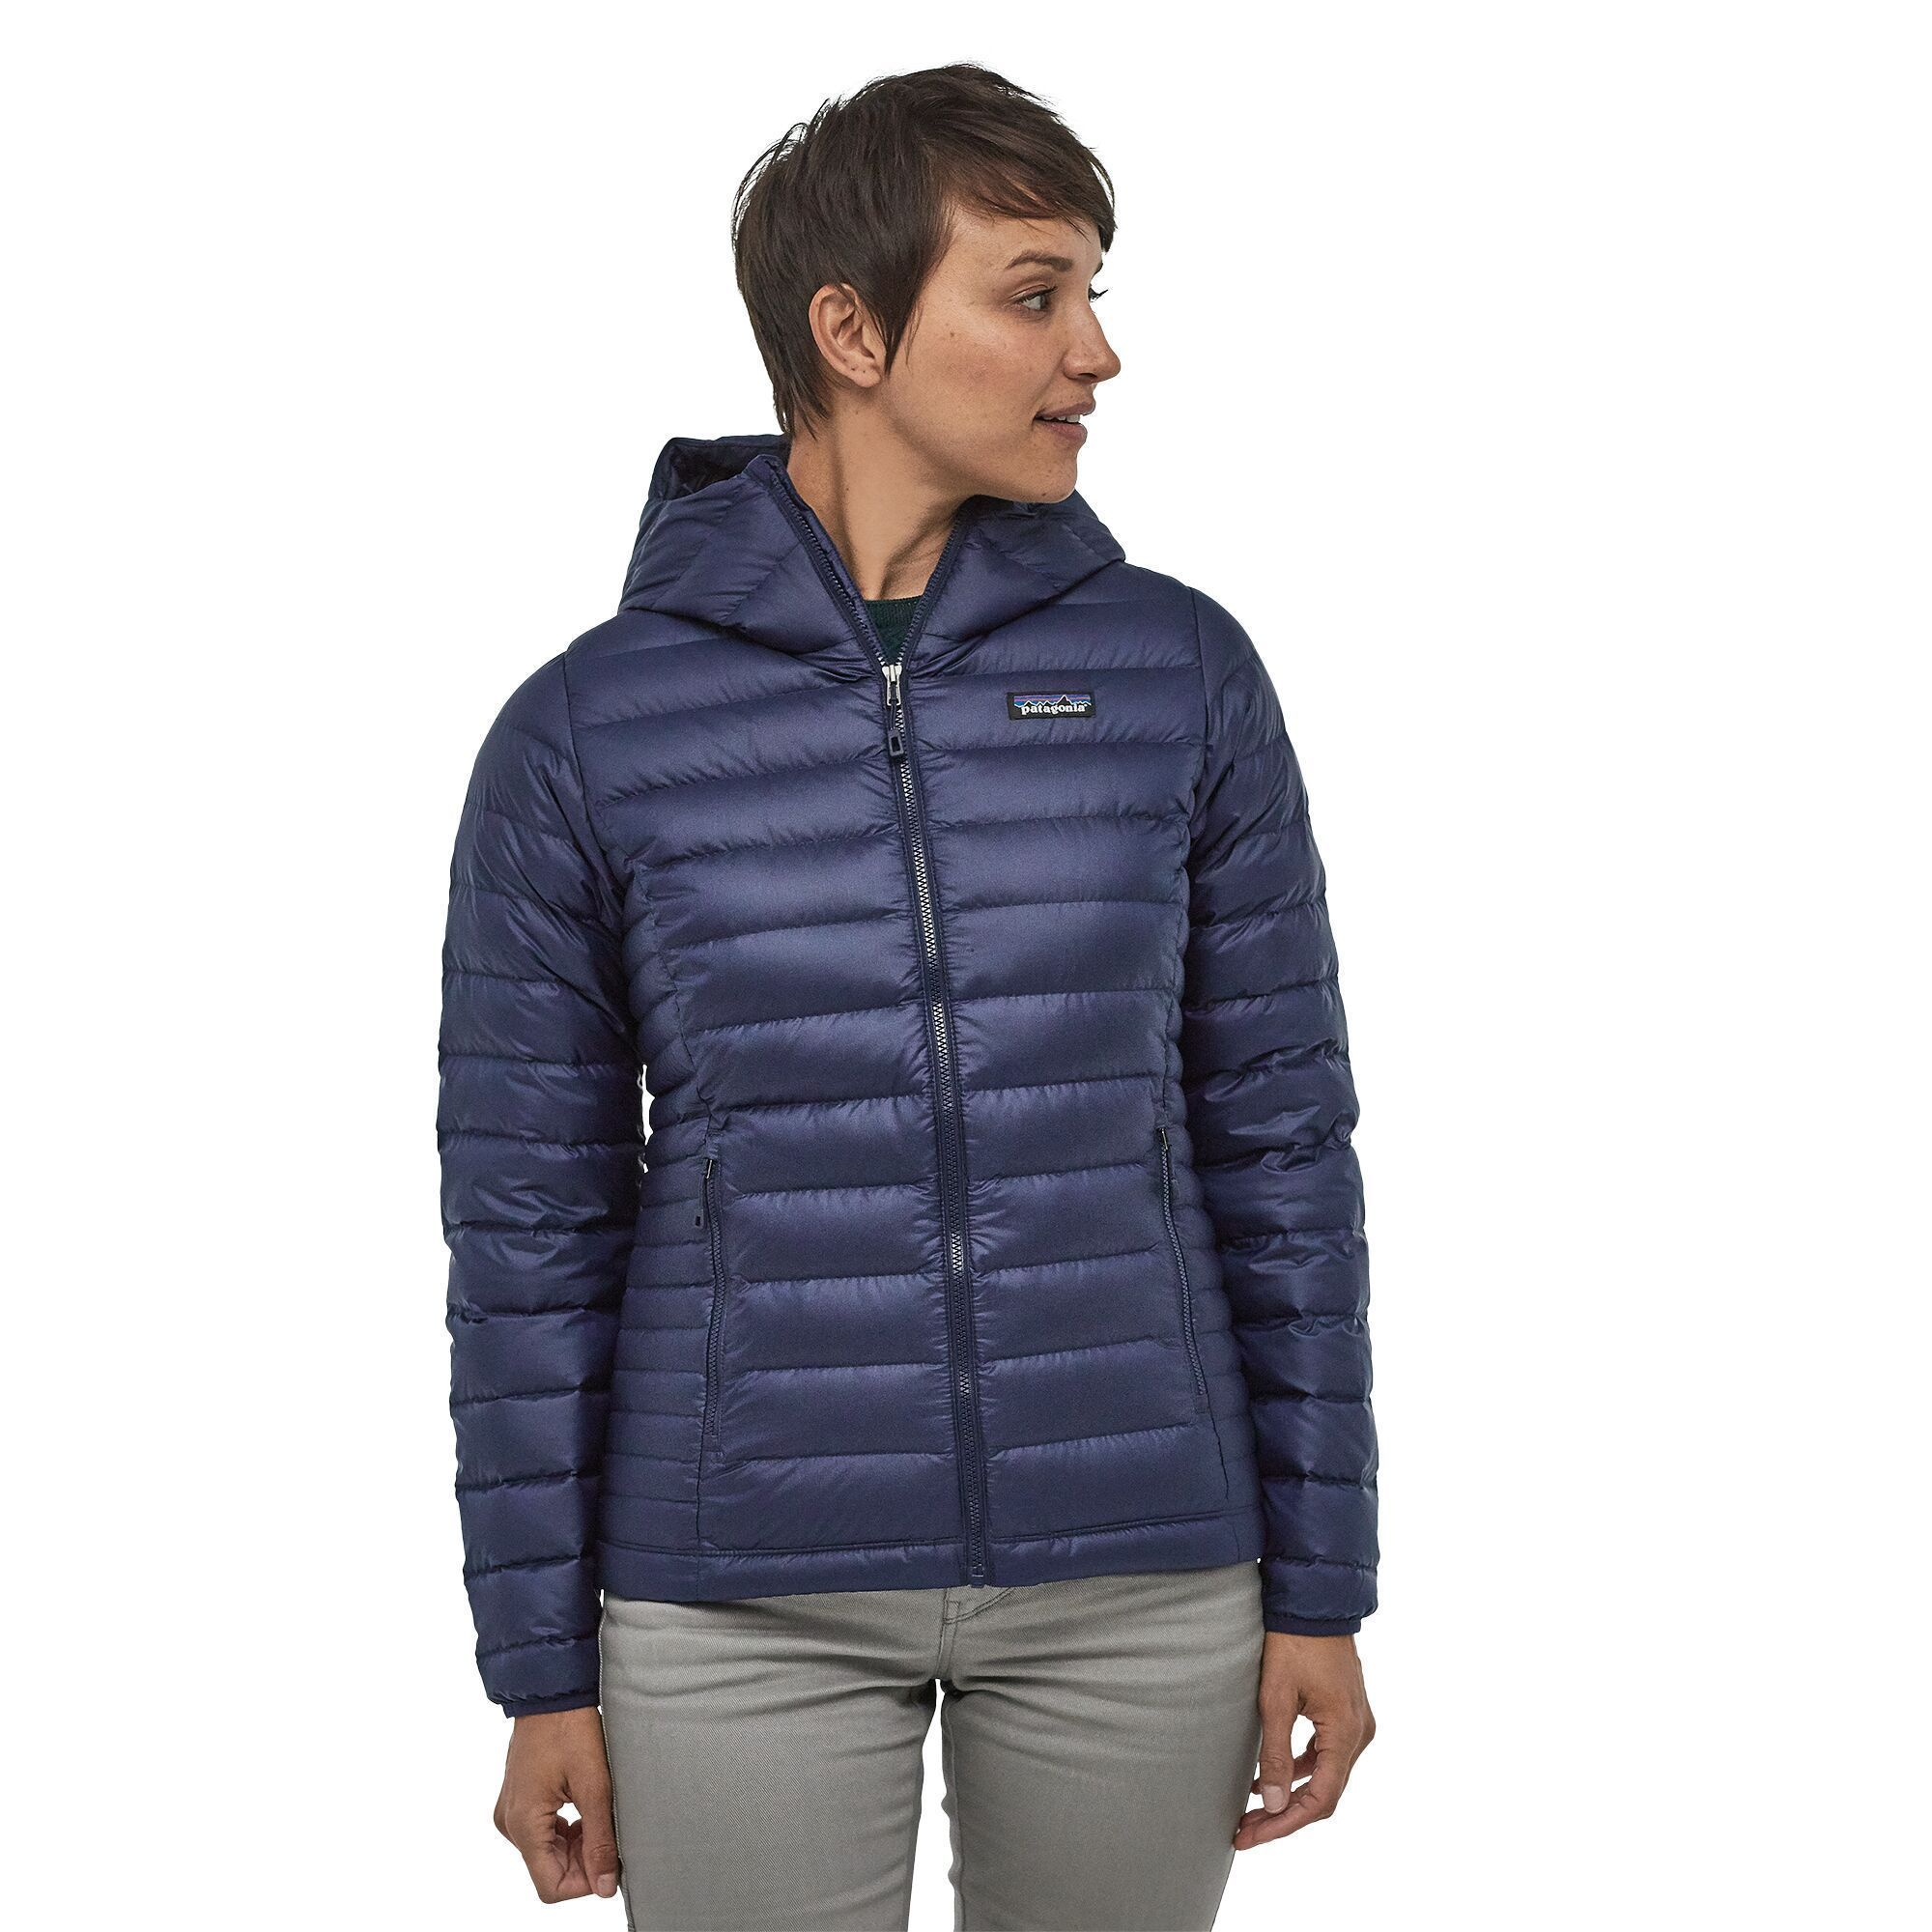 Patagonia - W's Down Sweater Hoody - Ethical and Sustainable Certified Down - Weekendbee - sustainable sportswear